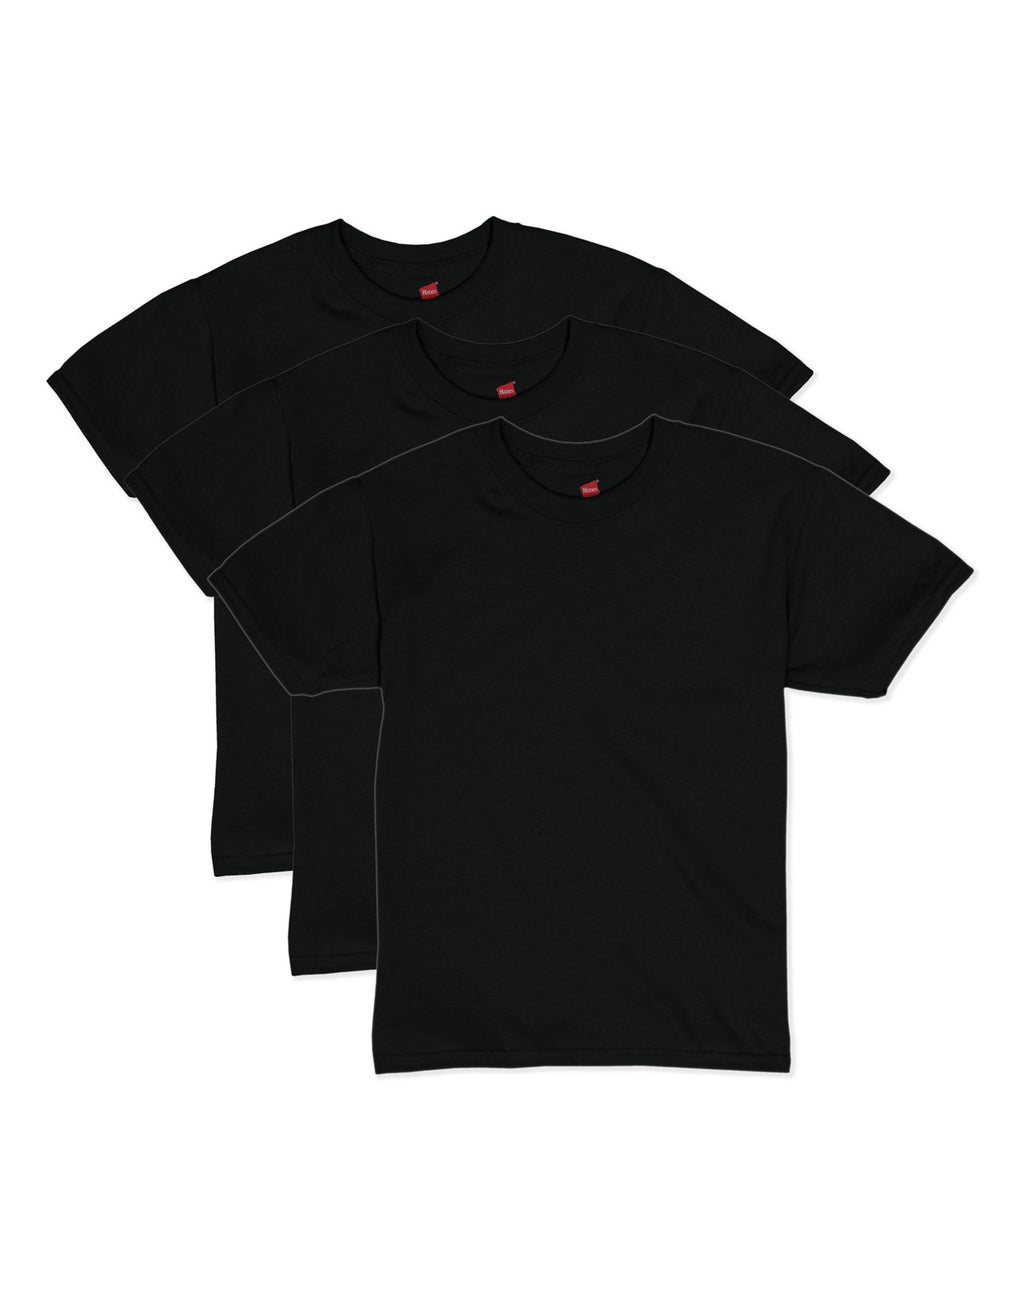 Hanes Boys EcoSmart Short Sleeve Tee Value 3-Pack